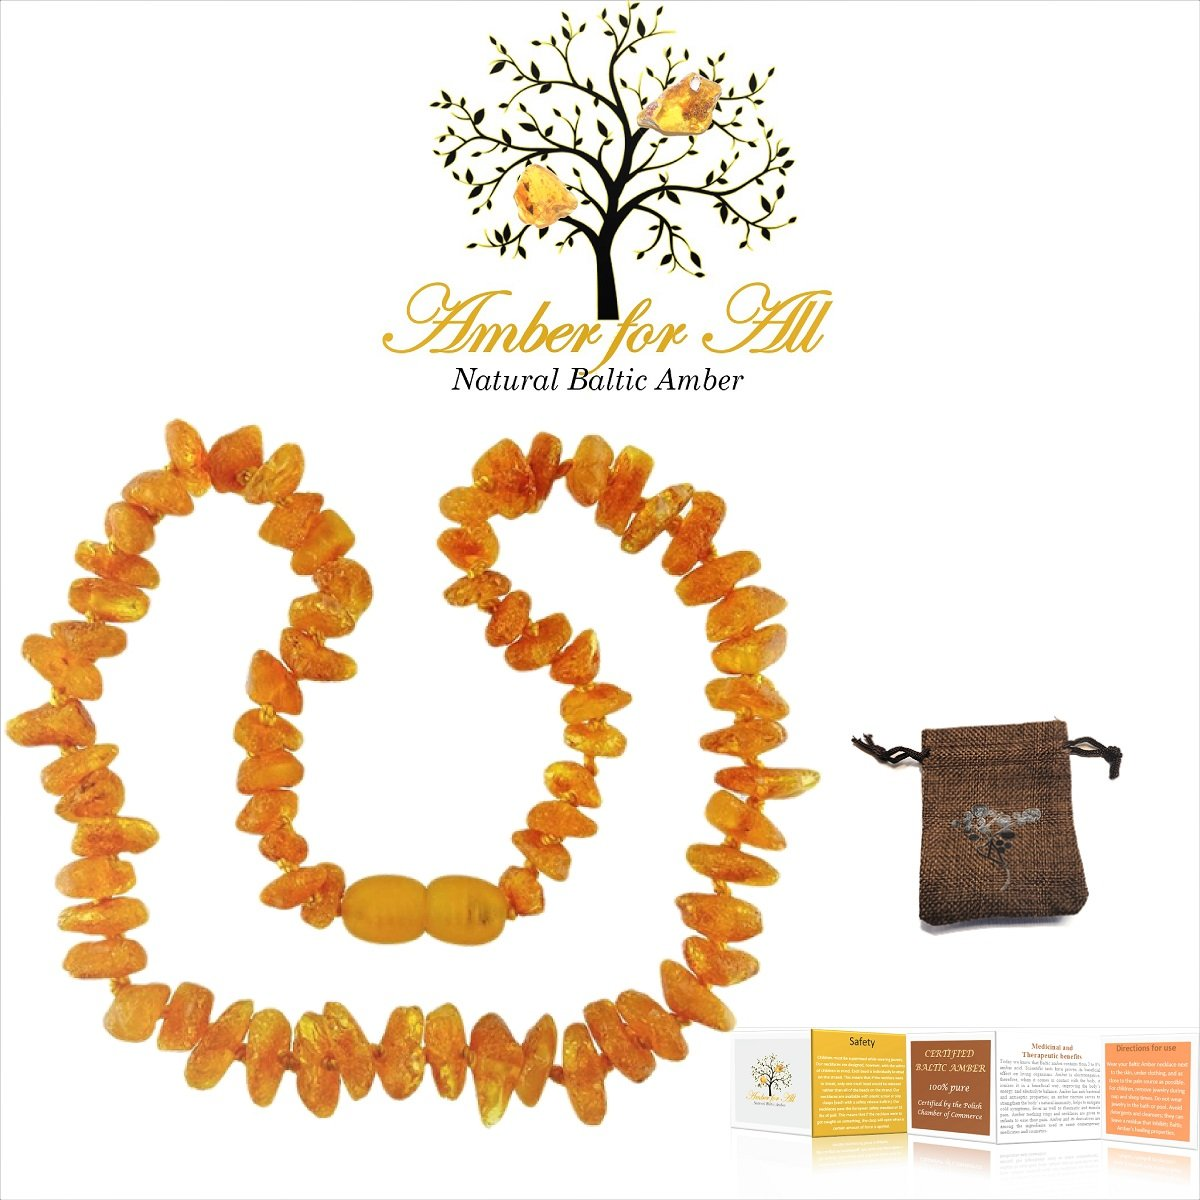 Baltic Amber Teething Necklace – reduces teething pain, drooling, inflammation – Certificates and Guarantees given – Unisex design – 13in (32cm) – Raw unpolished amber